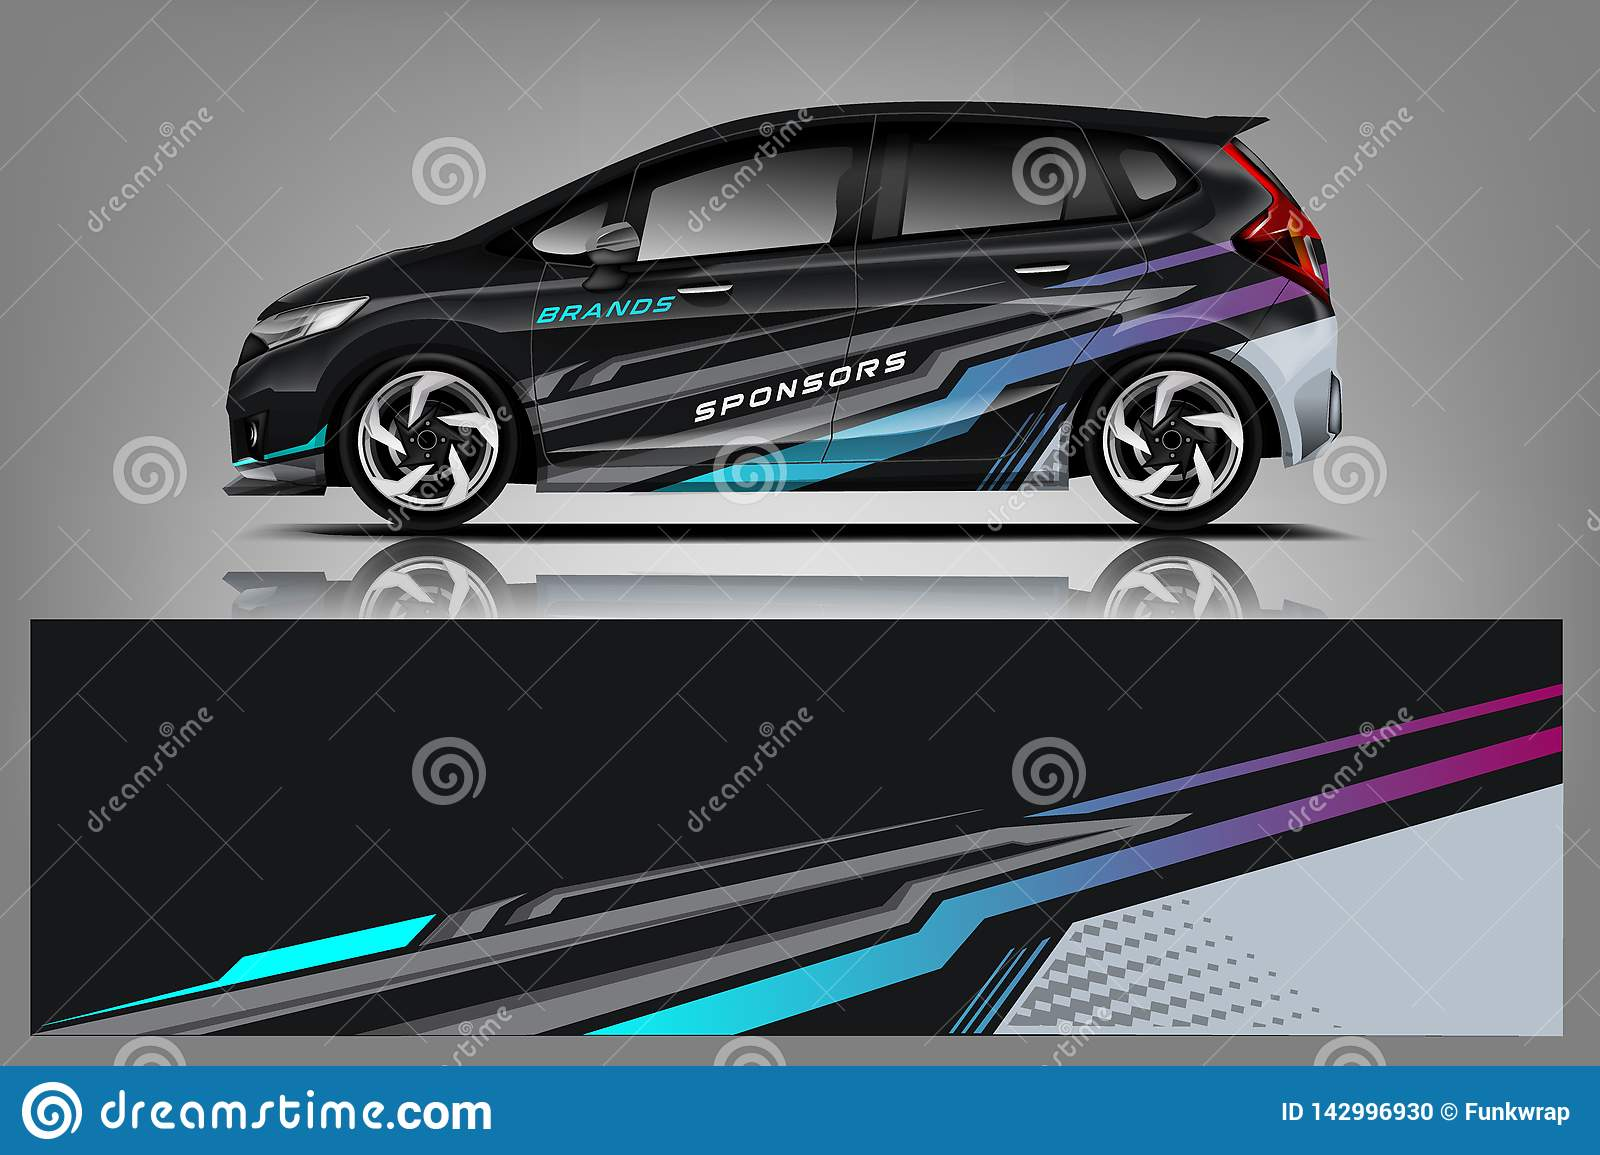 Car decal wrap design graphic abstract stripe racing background kit designs for vehicle race car rally adventure and livery vector